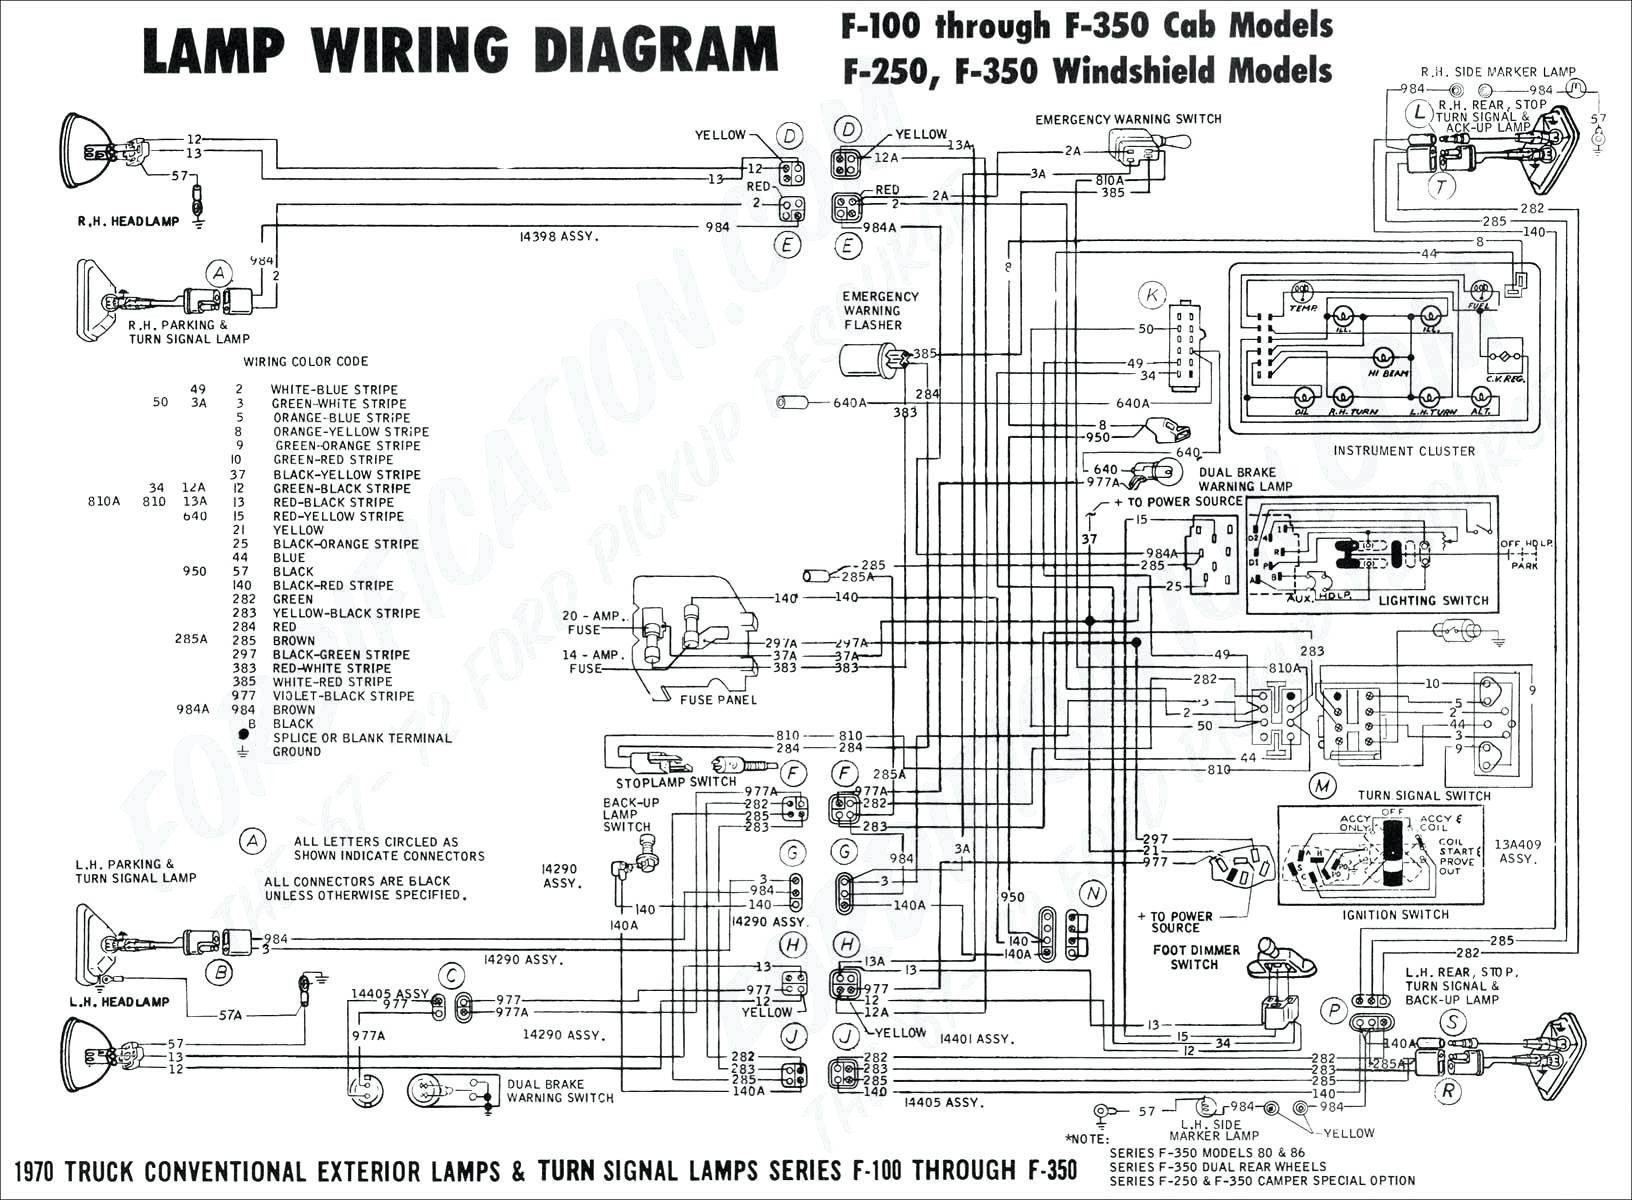 Three Phase Wiring Diagrams 3 Phase Water Heater Wiring Diagram Free Download Wiring Diagrams Of Three Phase Wiring Diagrams 3 Phase 220v Generator Wiring Diagrams